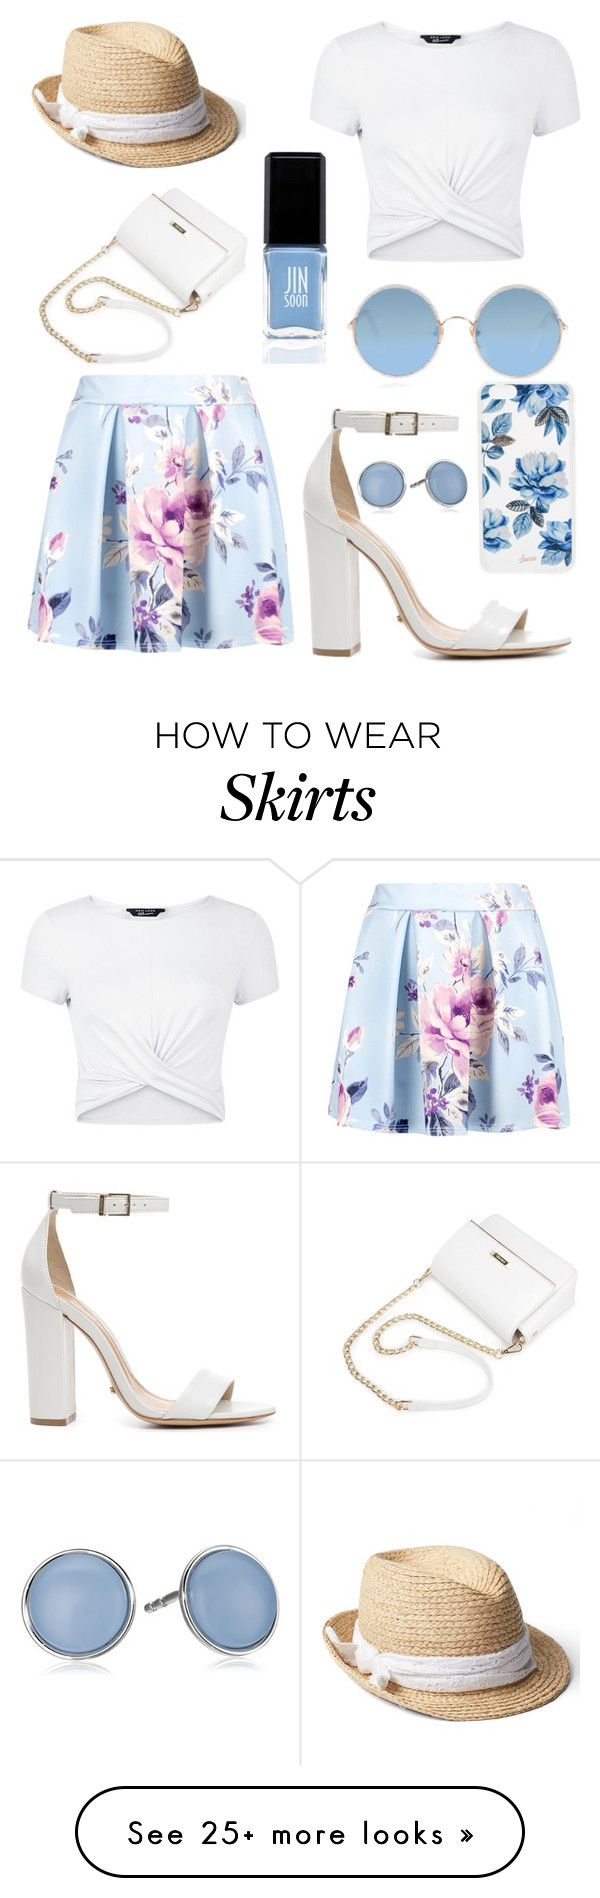 """Floral skirt"" by emma-rouget on Polyvore featuring New Look, Schutz, Gap, Sunday Somewhere, Skagen, JINsoon, Sonix, floralprint and Floralskirts"